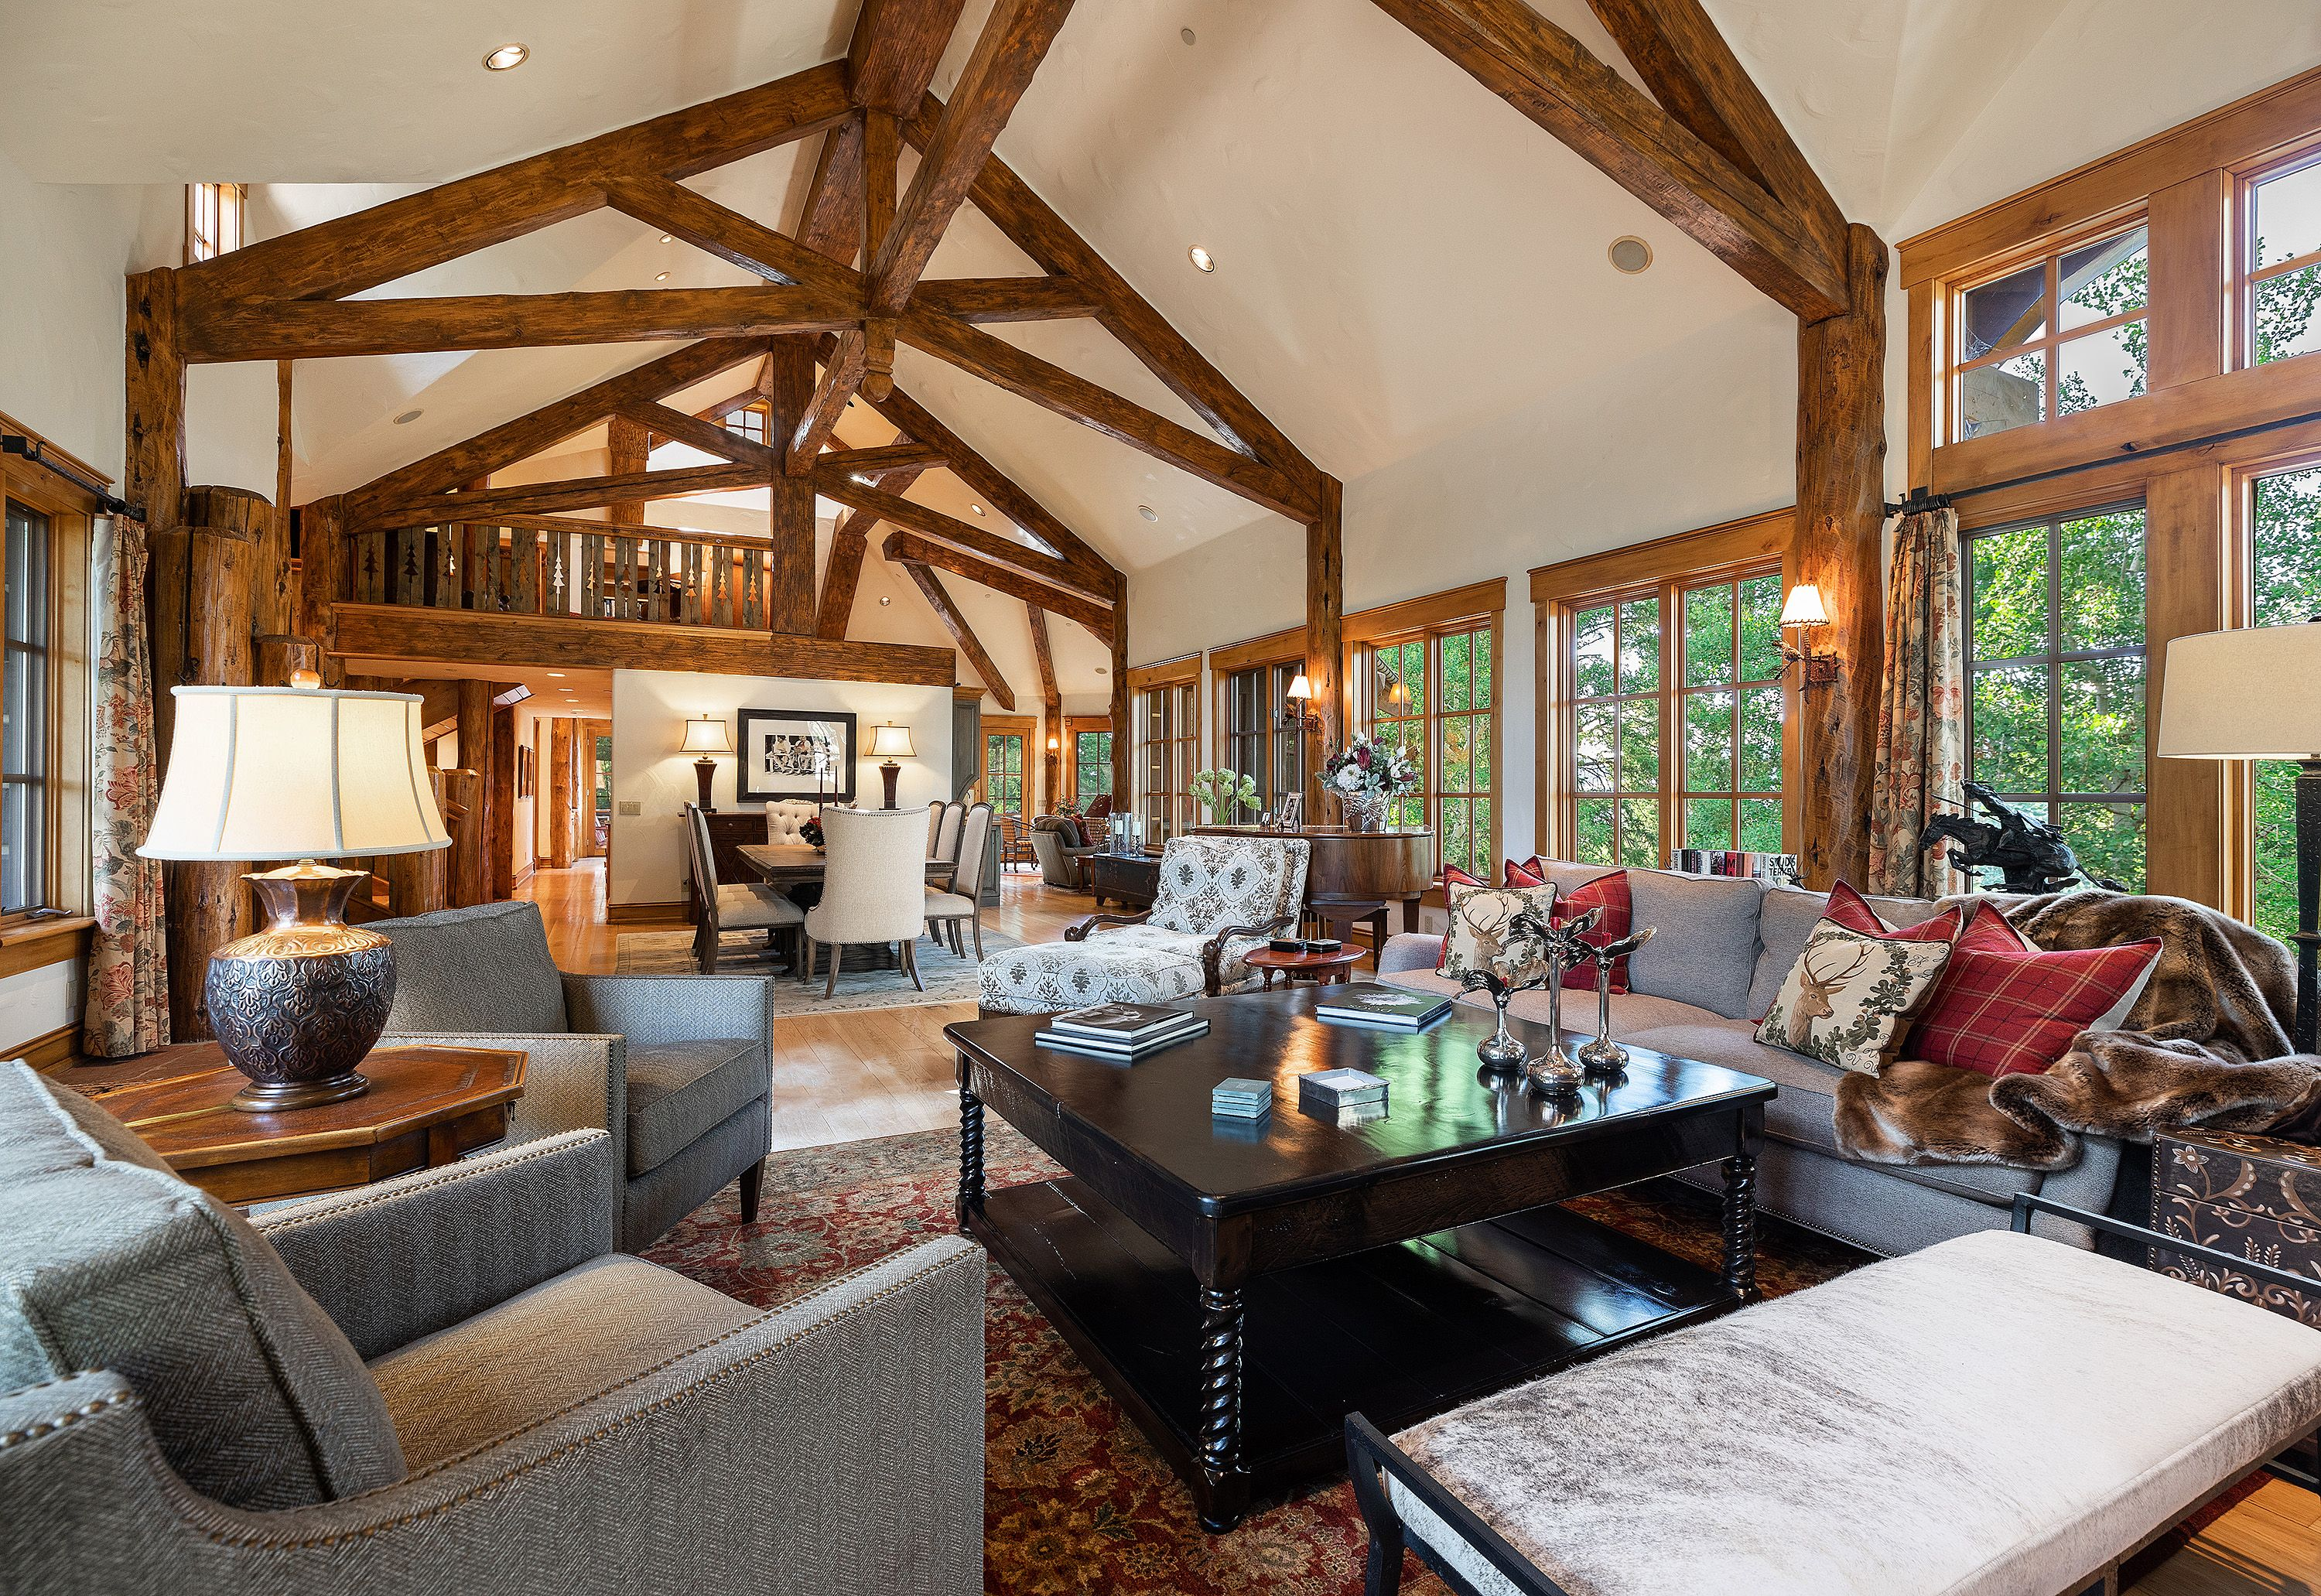 350 Tall Timber Beaver Creek, CO 81620